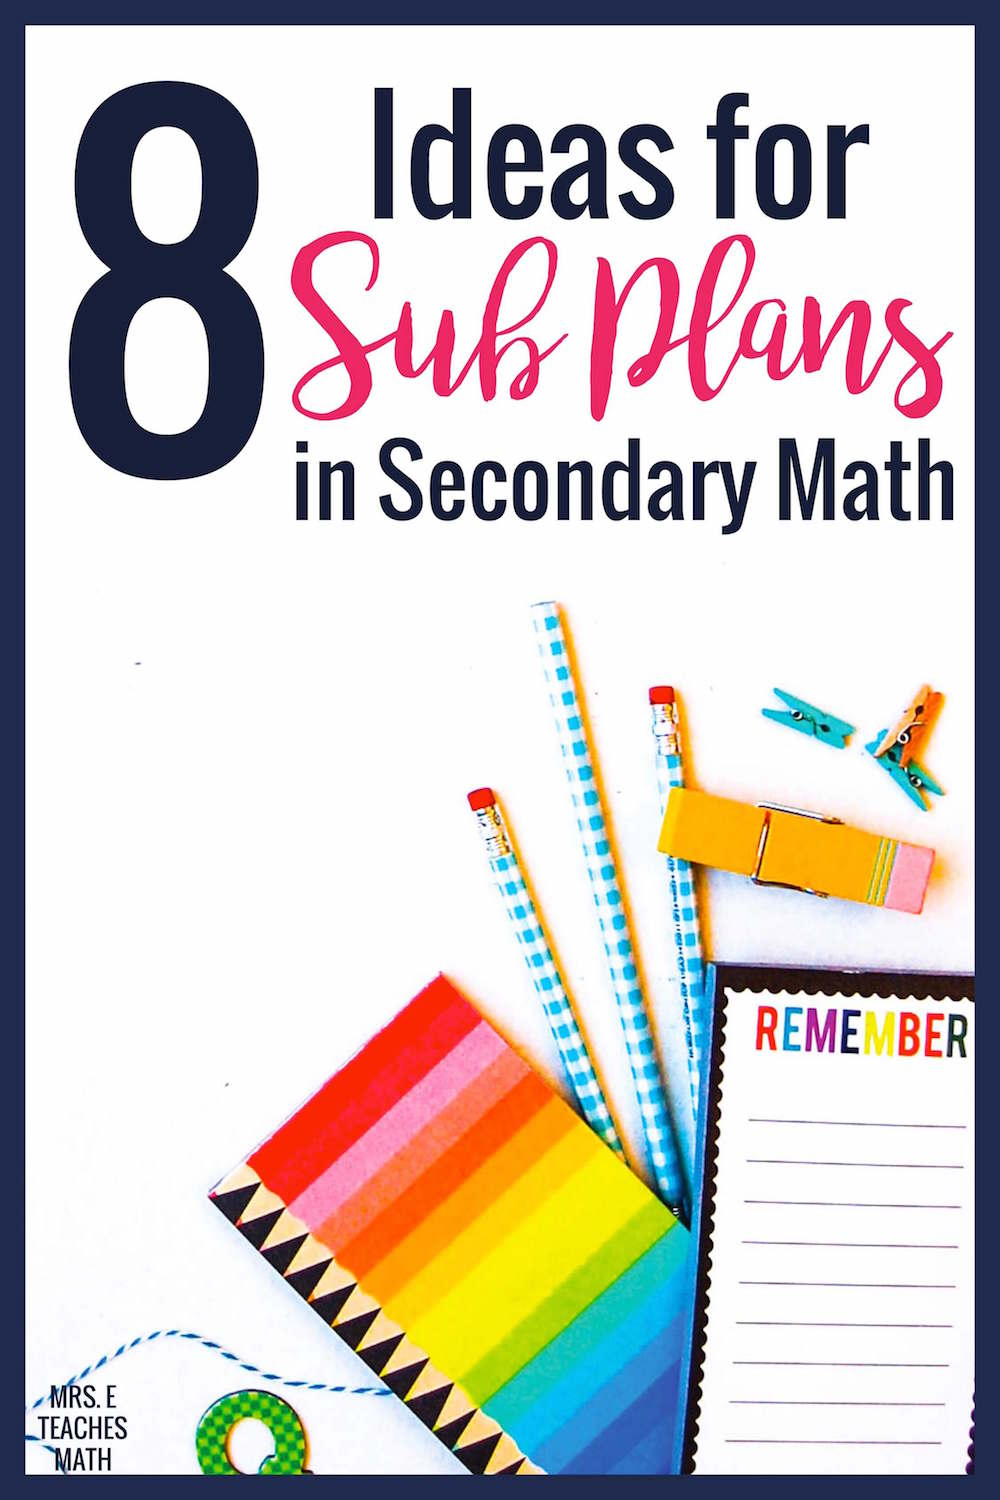 8 Ideas for Sub Plans in Secondary Math | Mrs. E Teaches Math